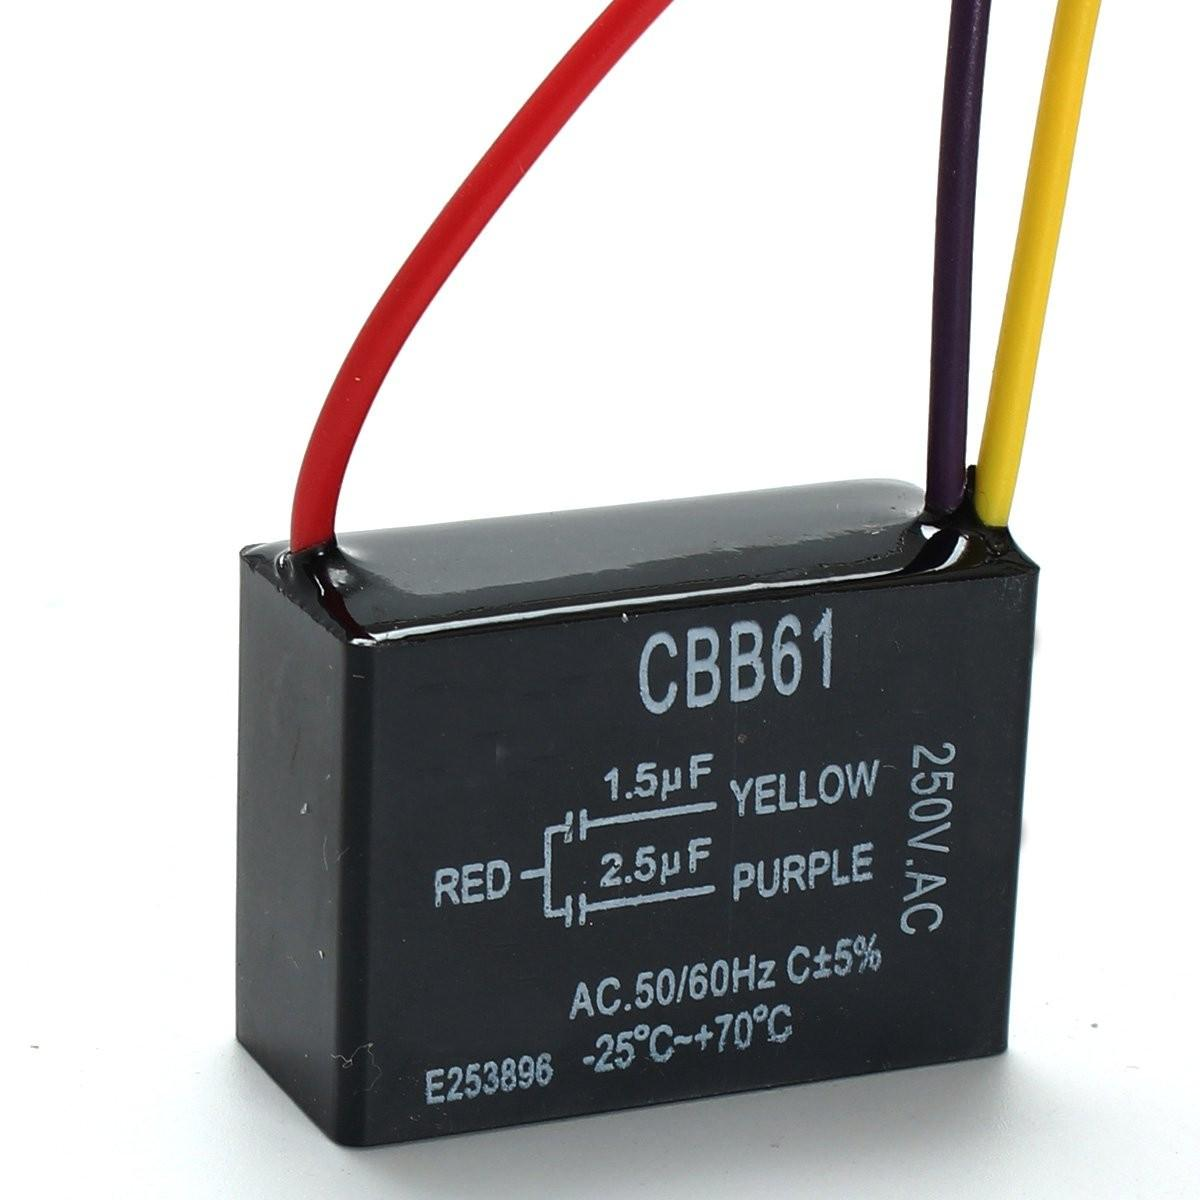 hight resolution of cbb61 1 5uf 2 3 wire 250vac ceiling fan capacitor wires cod